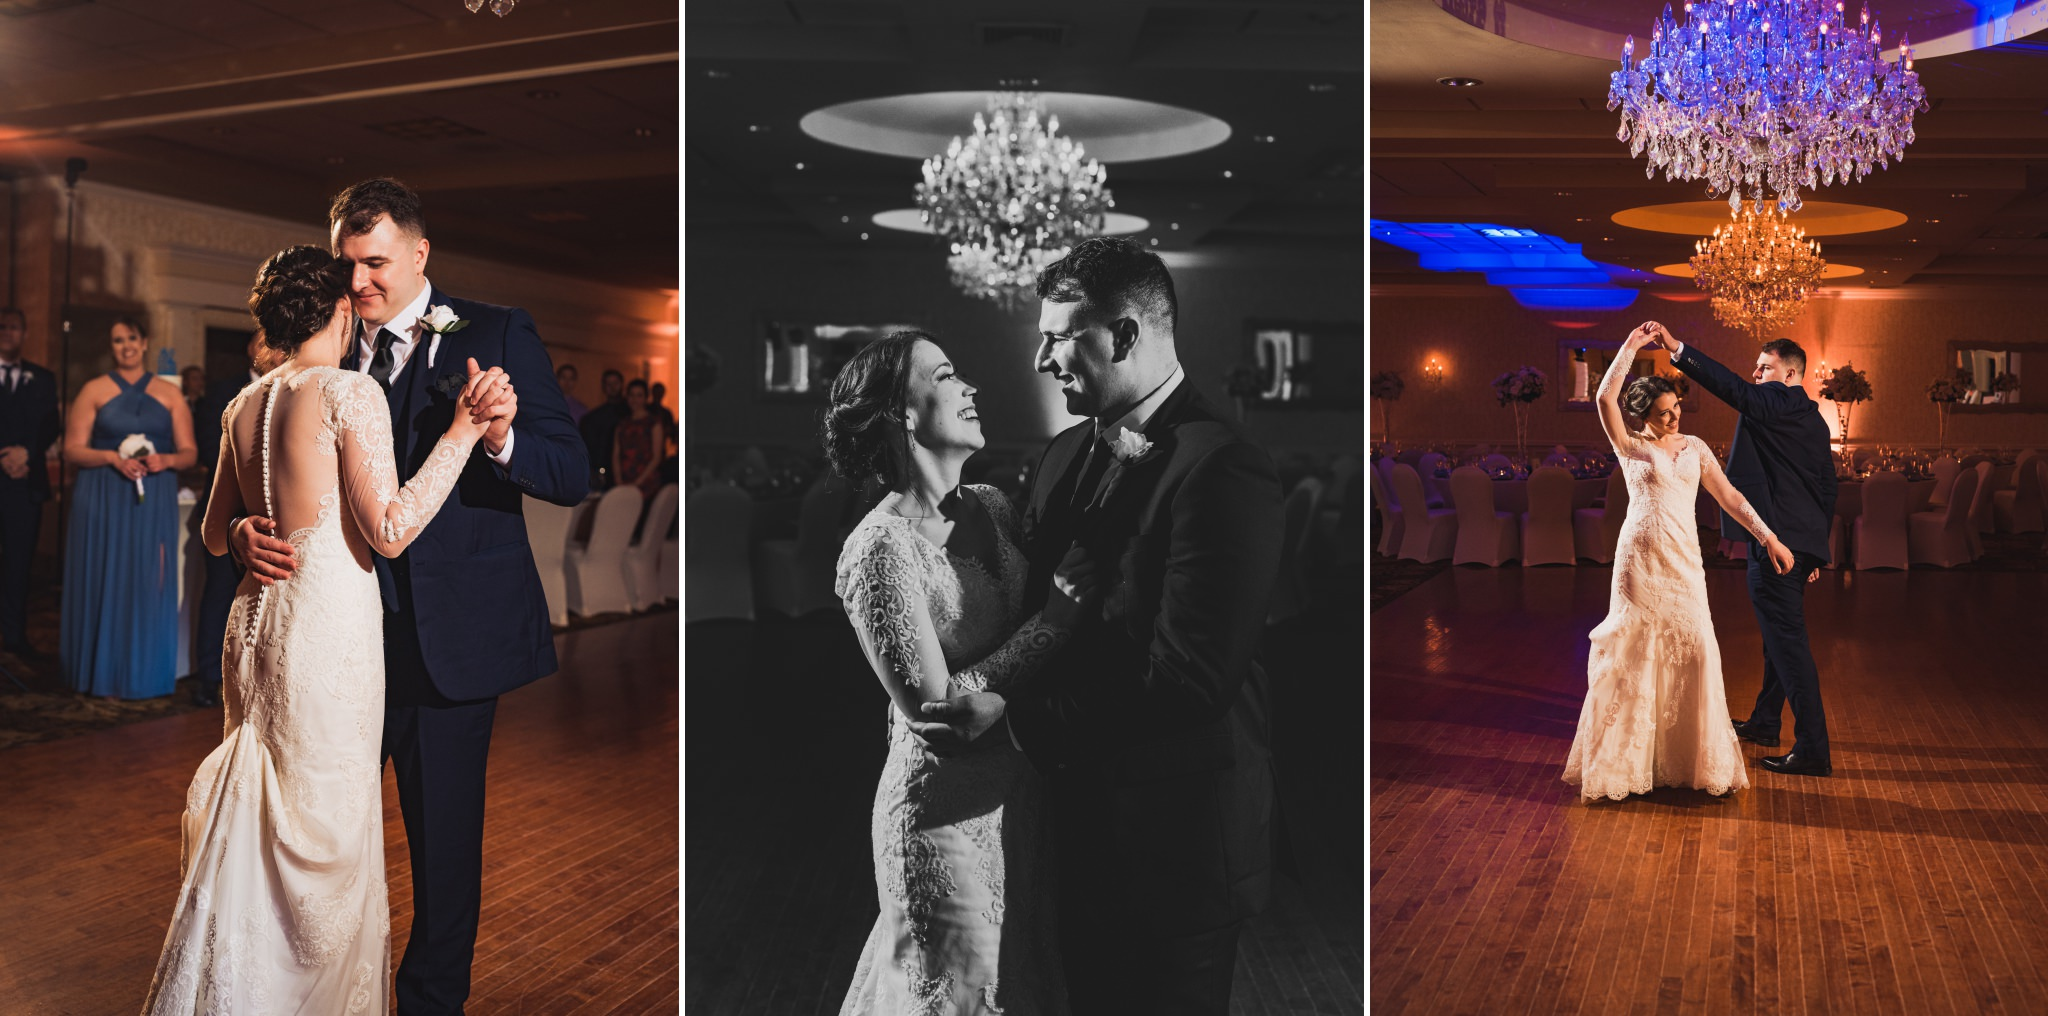 Photos taken during Luke and Kelly's wedding in New Jersey. photographed with a photojournalistic style and with story telling in mind. 